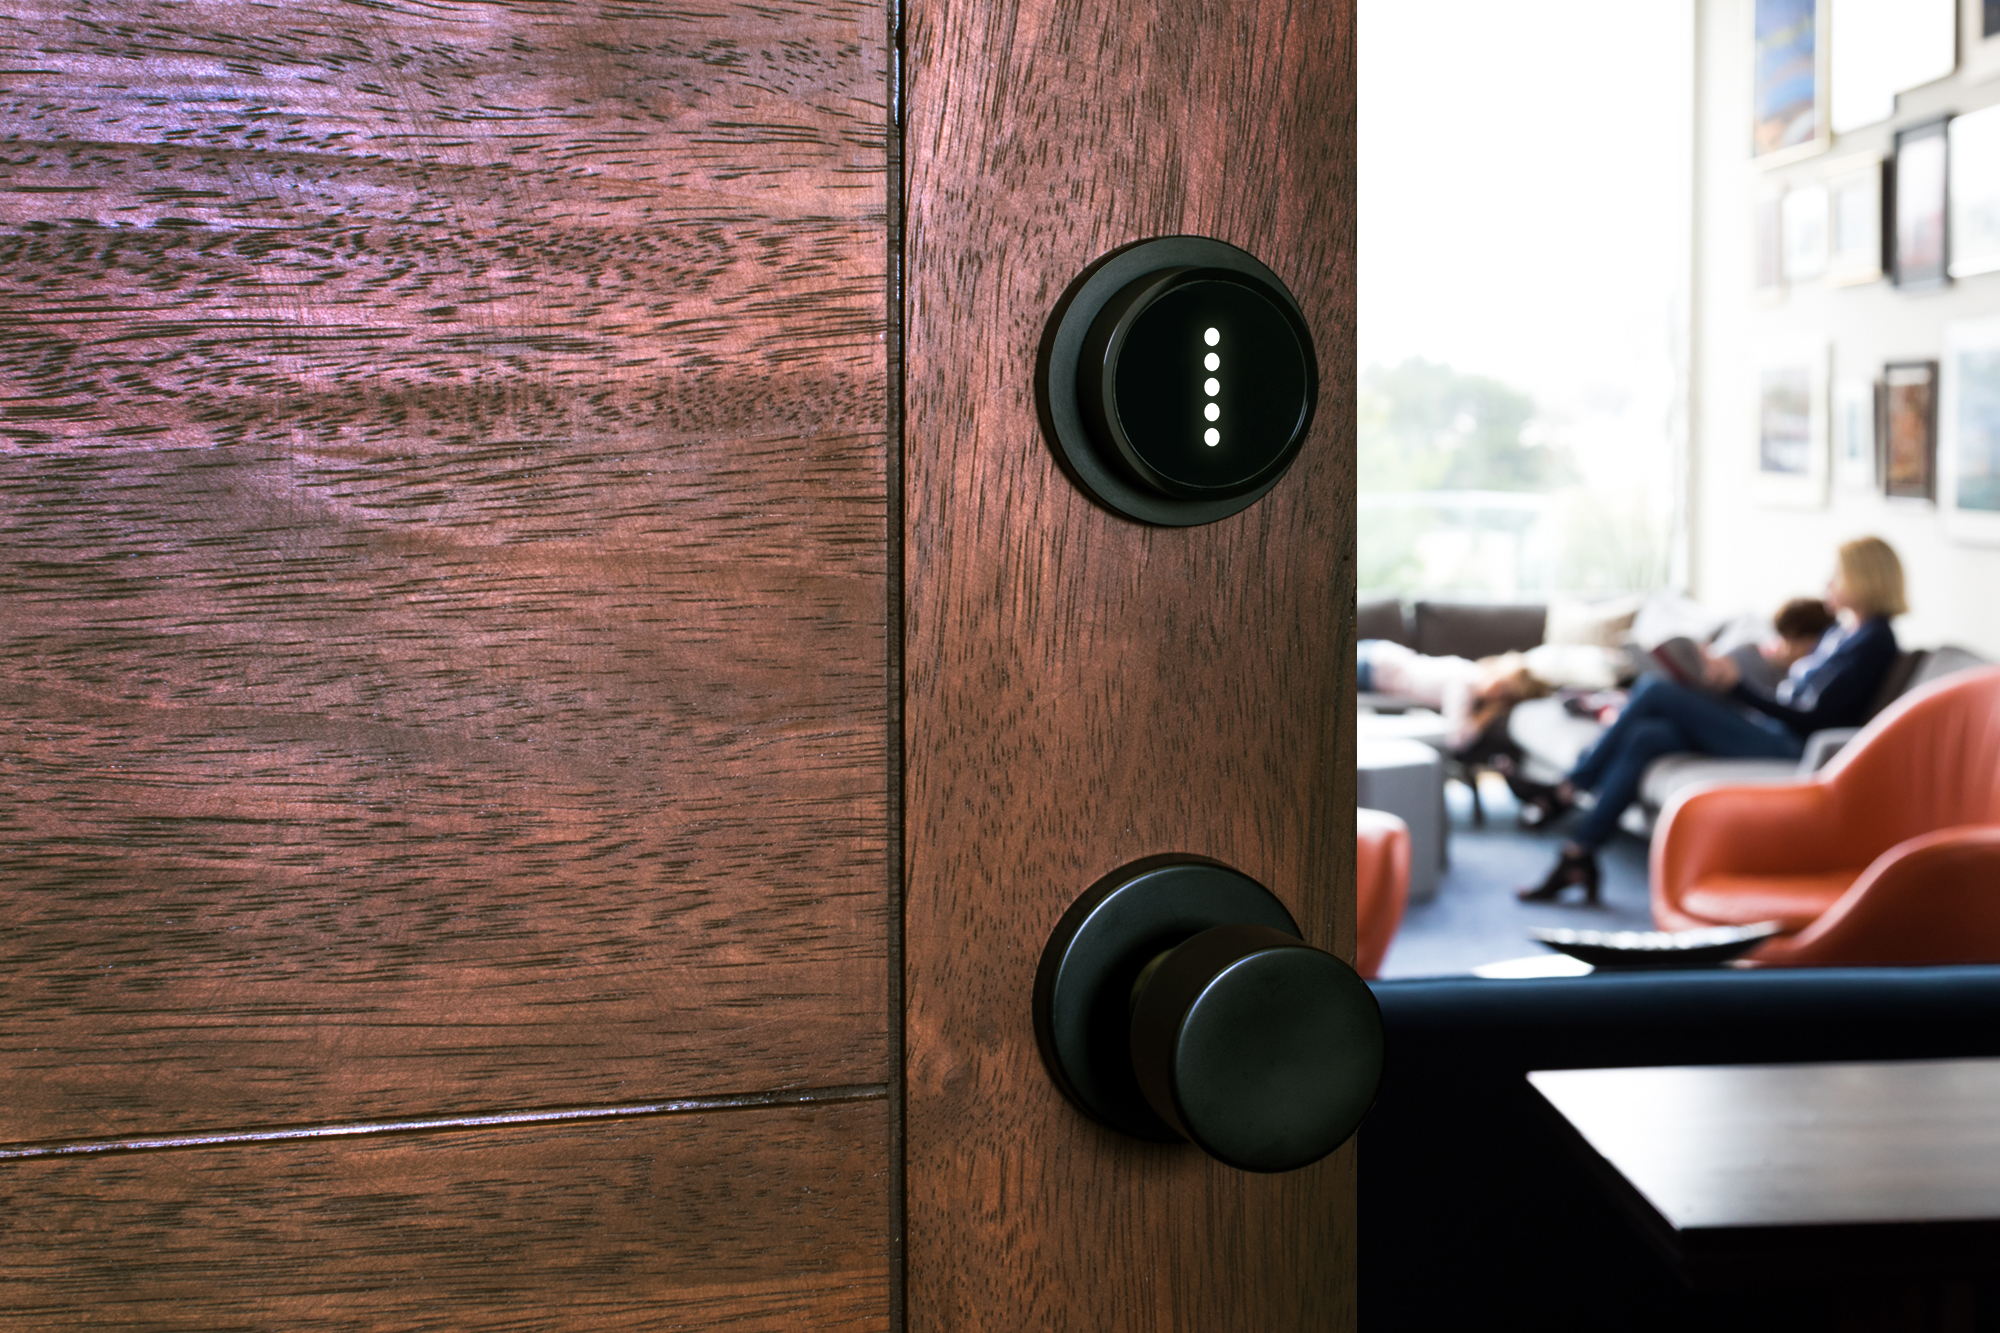 Otto connected home lock system